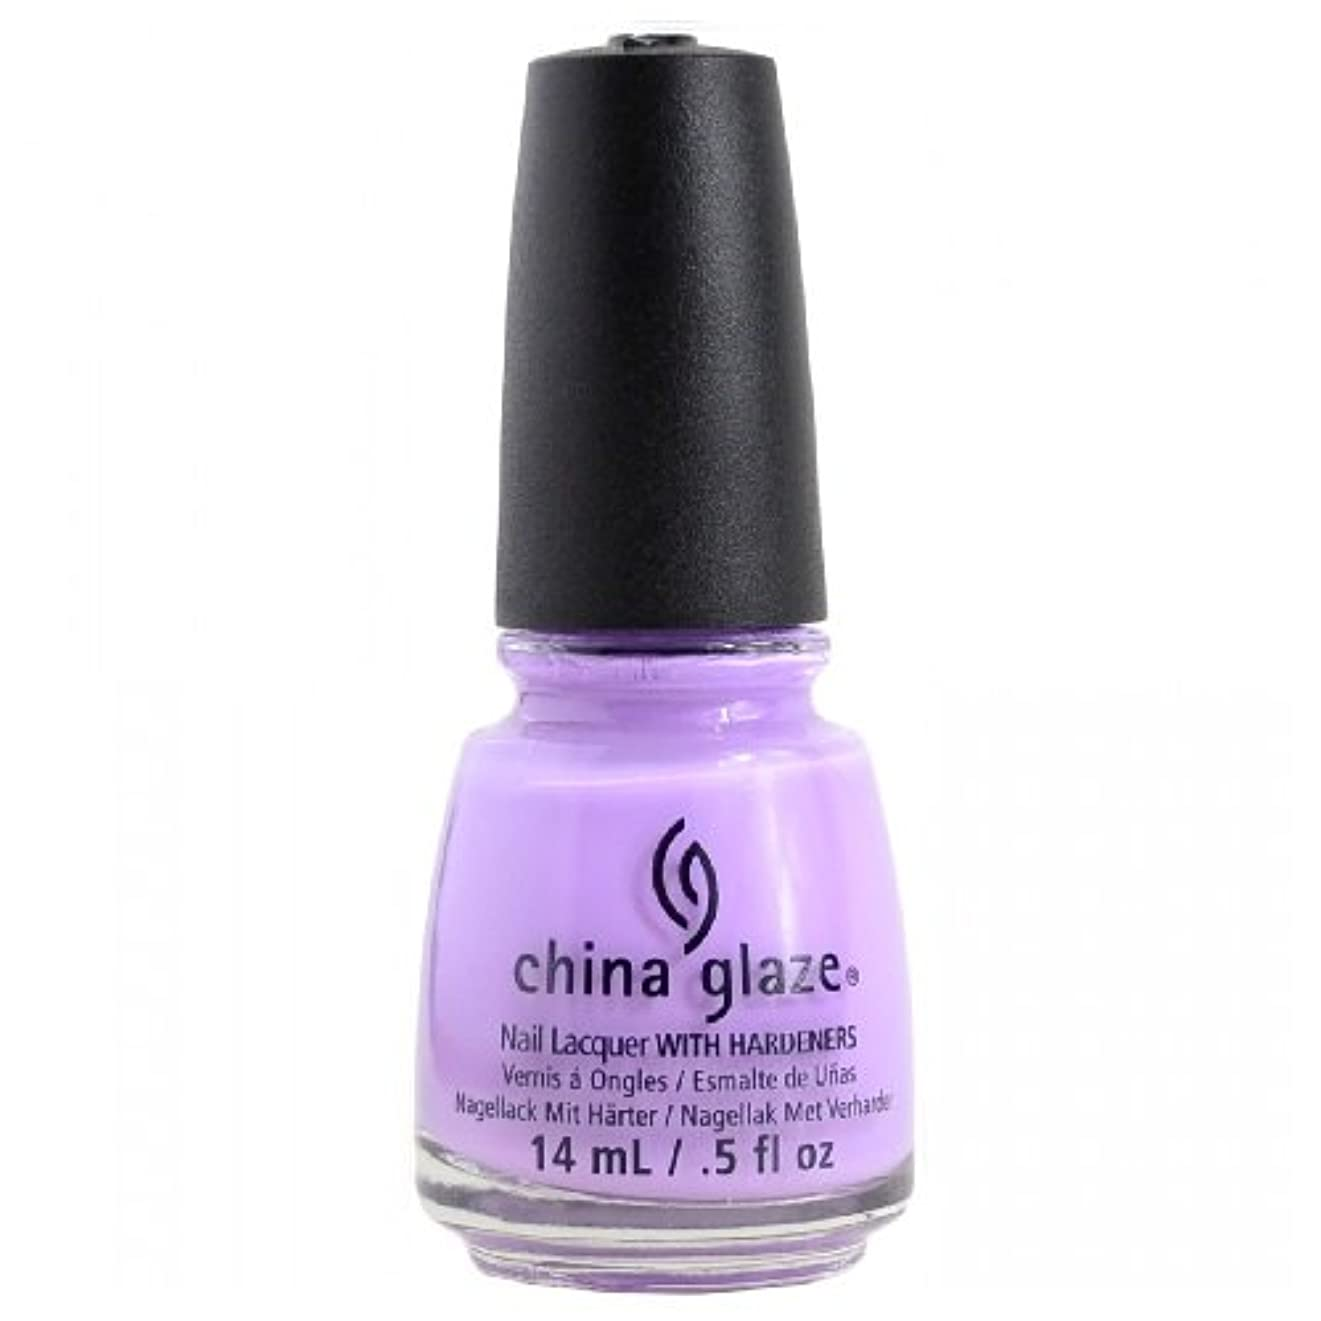 CHINA GLAZE Nail Lacquer - Art City Flourish - Lotus Begin